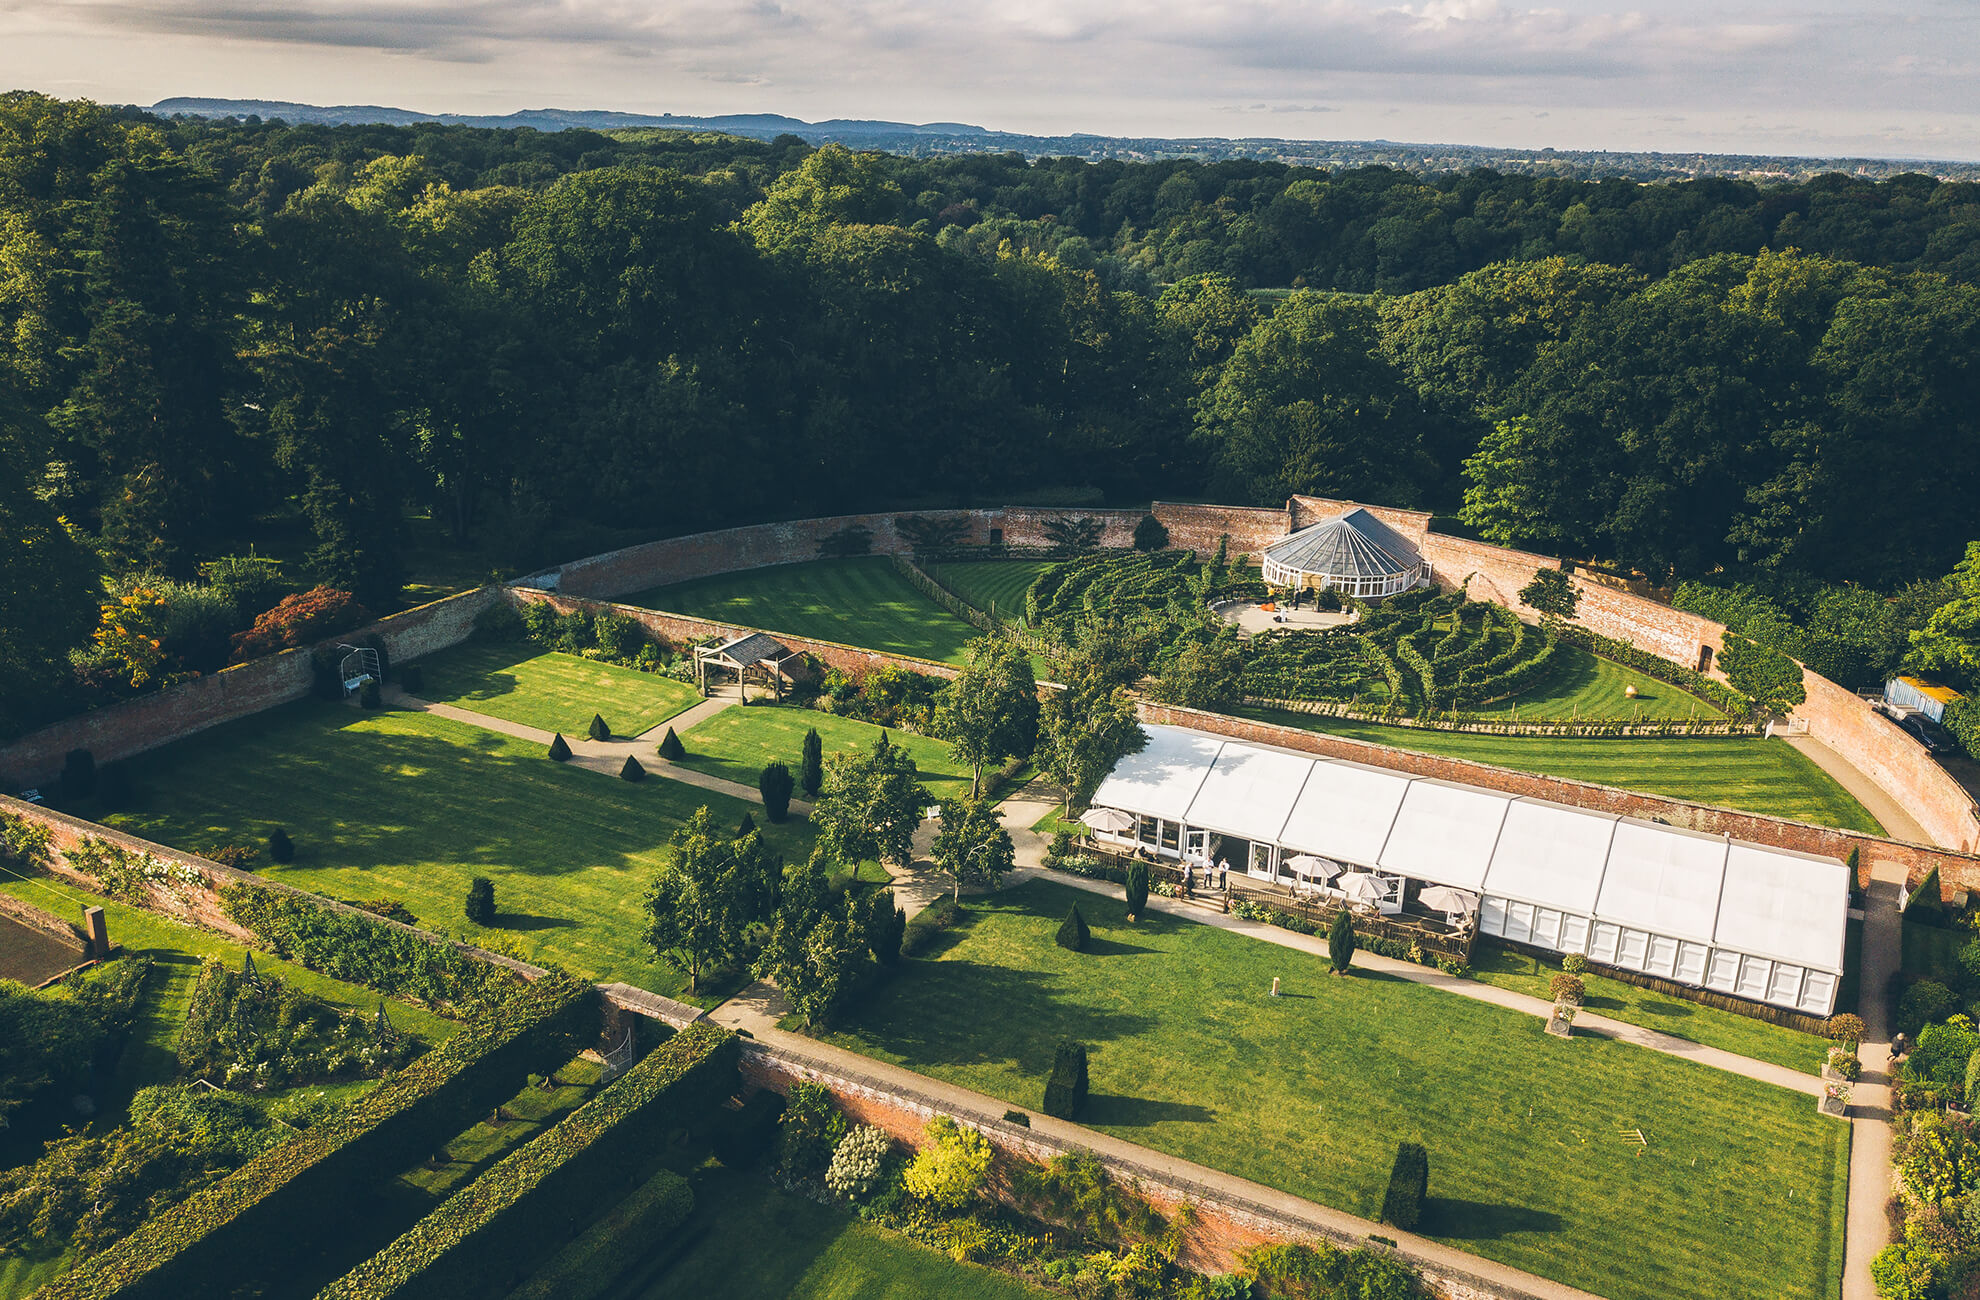 An aerial shot of the beautiful glasshouse and gardens at Combermere Abbey wedding venue in Cheshire